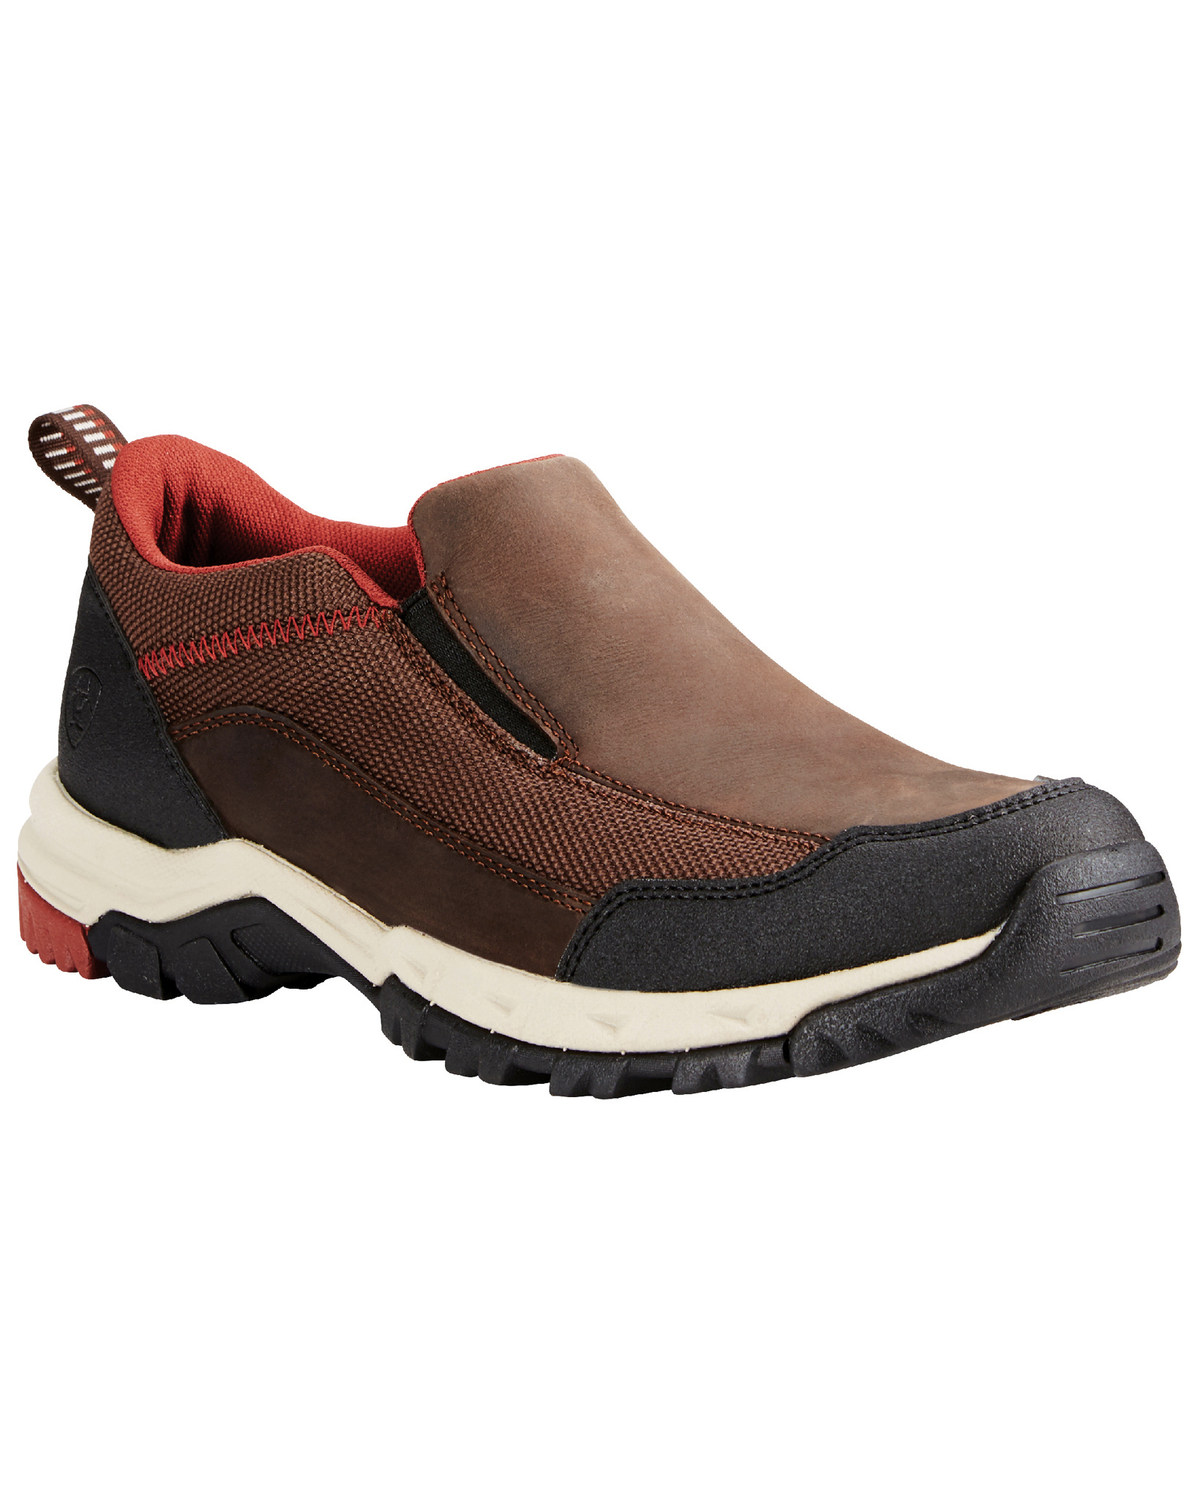 a3a79a2daa9 Ariat Men's Skyline Slip-On Hiking Shoes